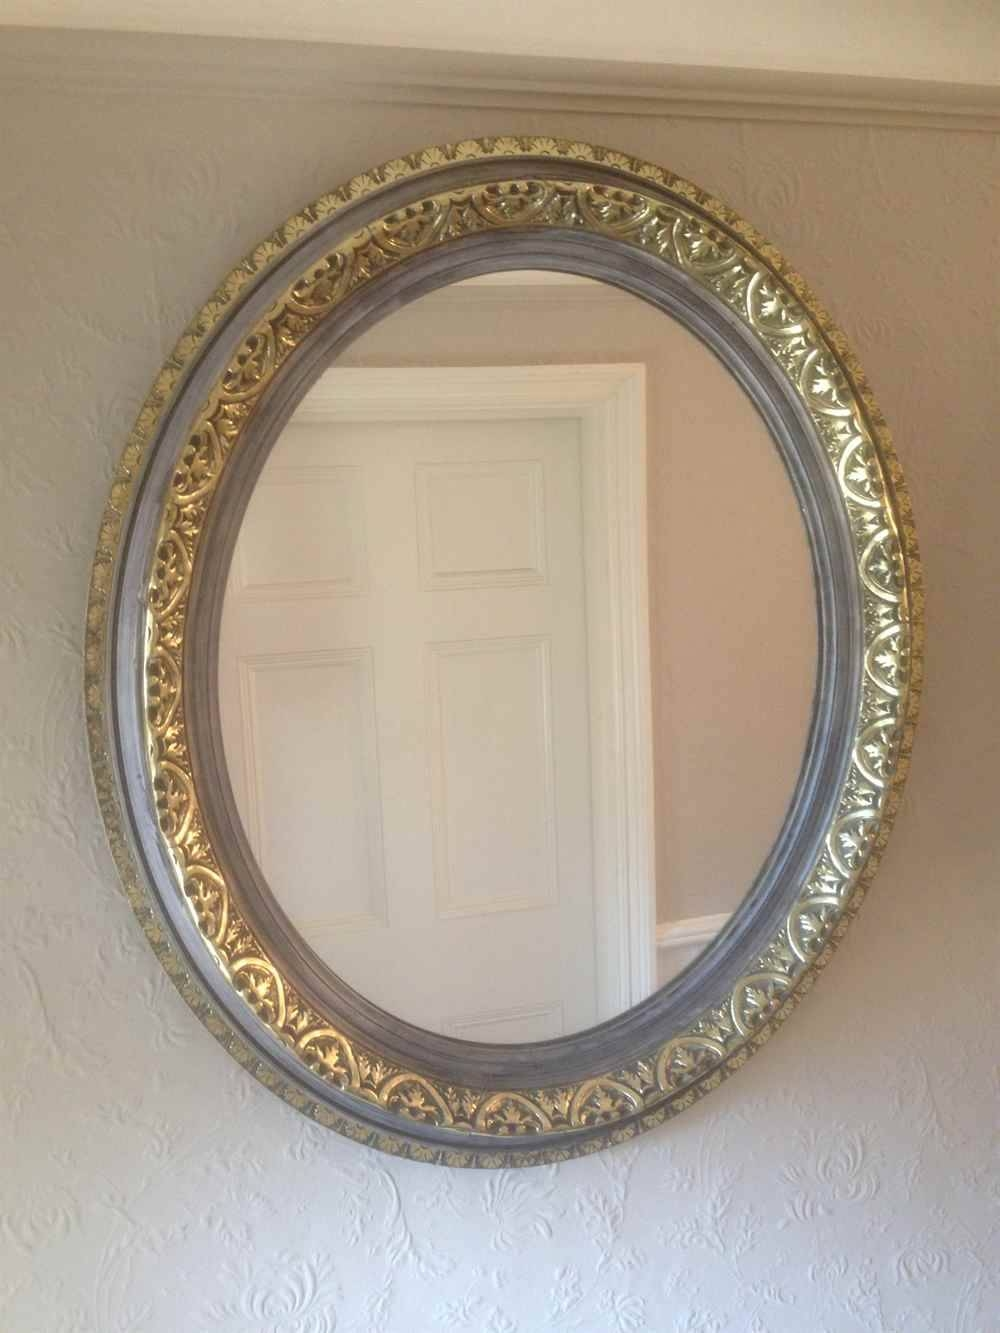 A Fabulous Pair Of Antique 19Th Century French Carved Wood Gilt pertaining to French Oval Mirrors (Image 4 of 15)